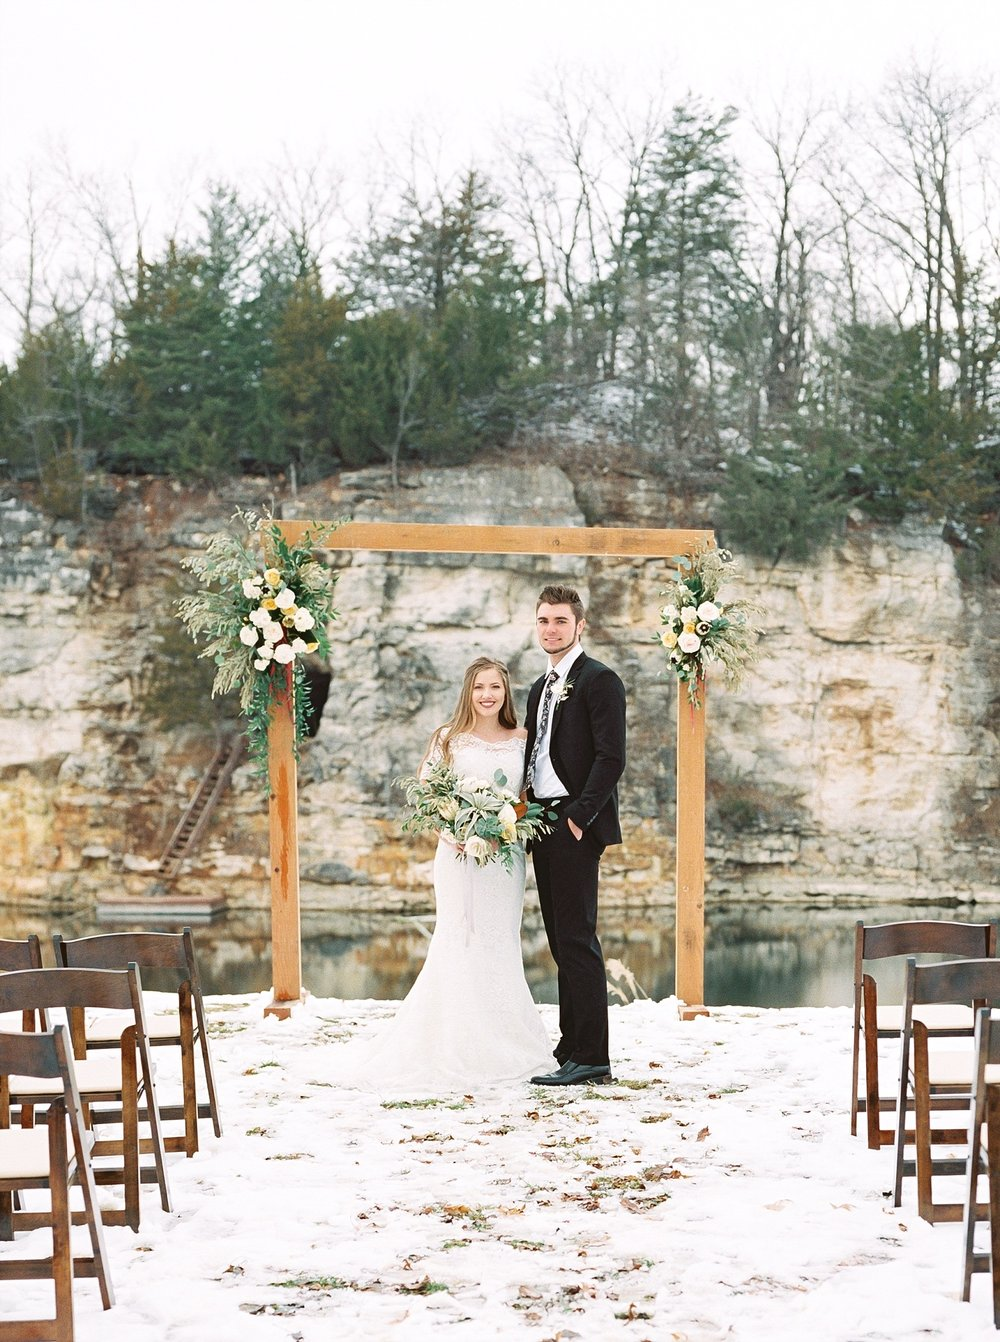 Snowy Winter Wedding at Wildcliff Events Lake With Earthy Jewel Tones and Organic Refined Style by Kelsi Kliethermes Photography Kansas City Missouri Wedding Photographer_0121.jpg